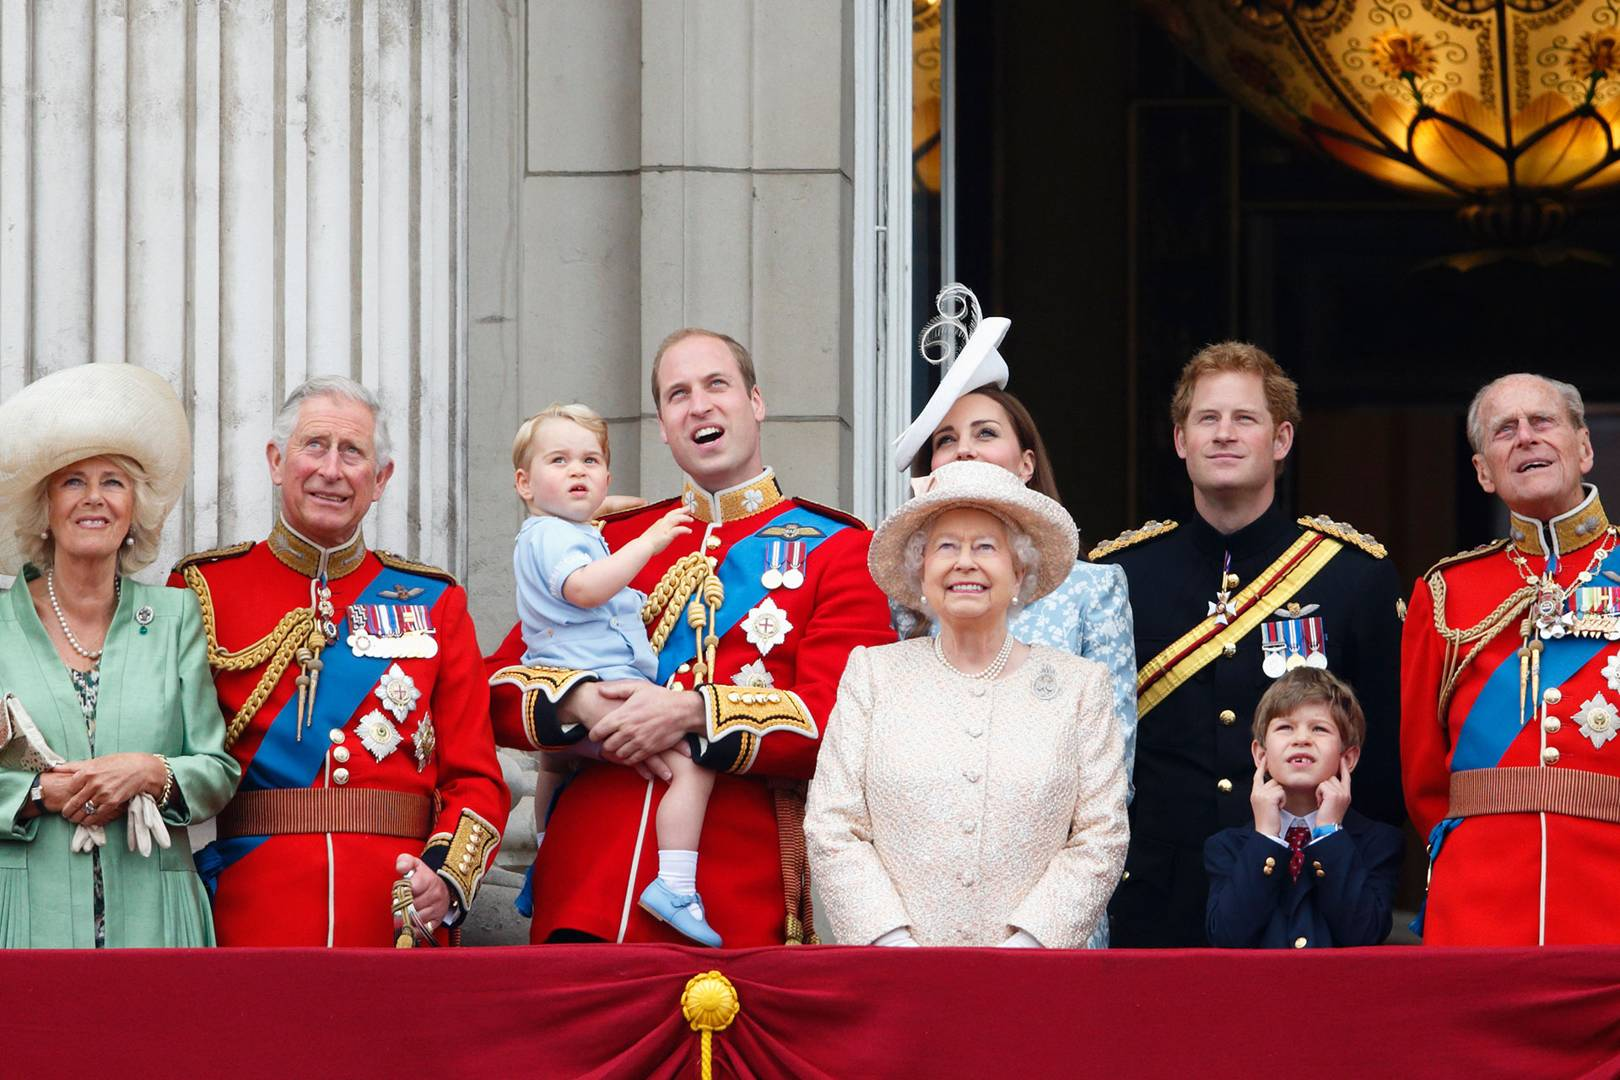 A complete lexicon of the Royal Family